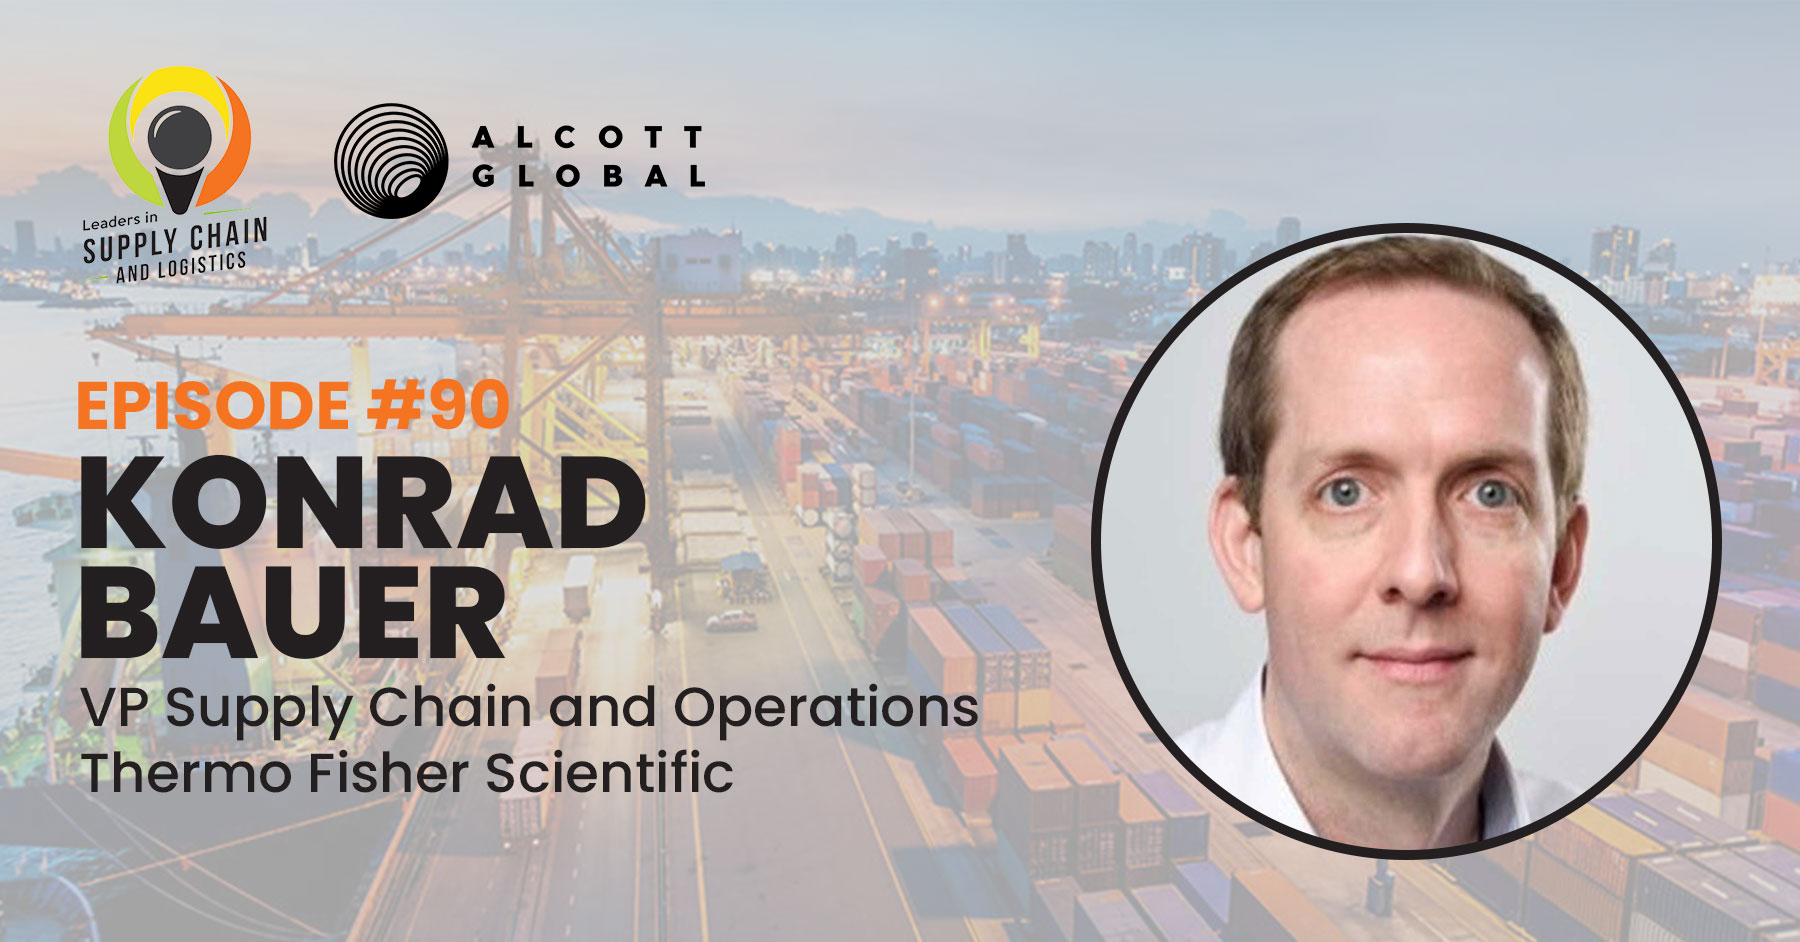 #90: Konrad Bauer VP Supply Chain and Operations at Thermo Fisher Scientific Featured Image